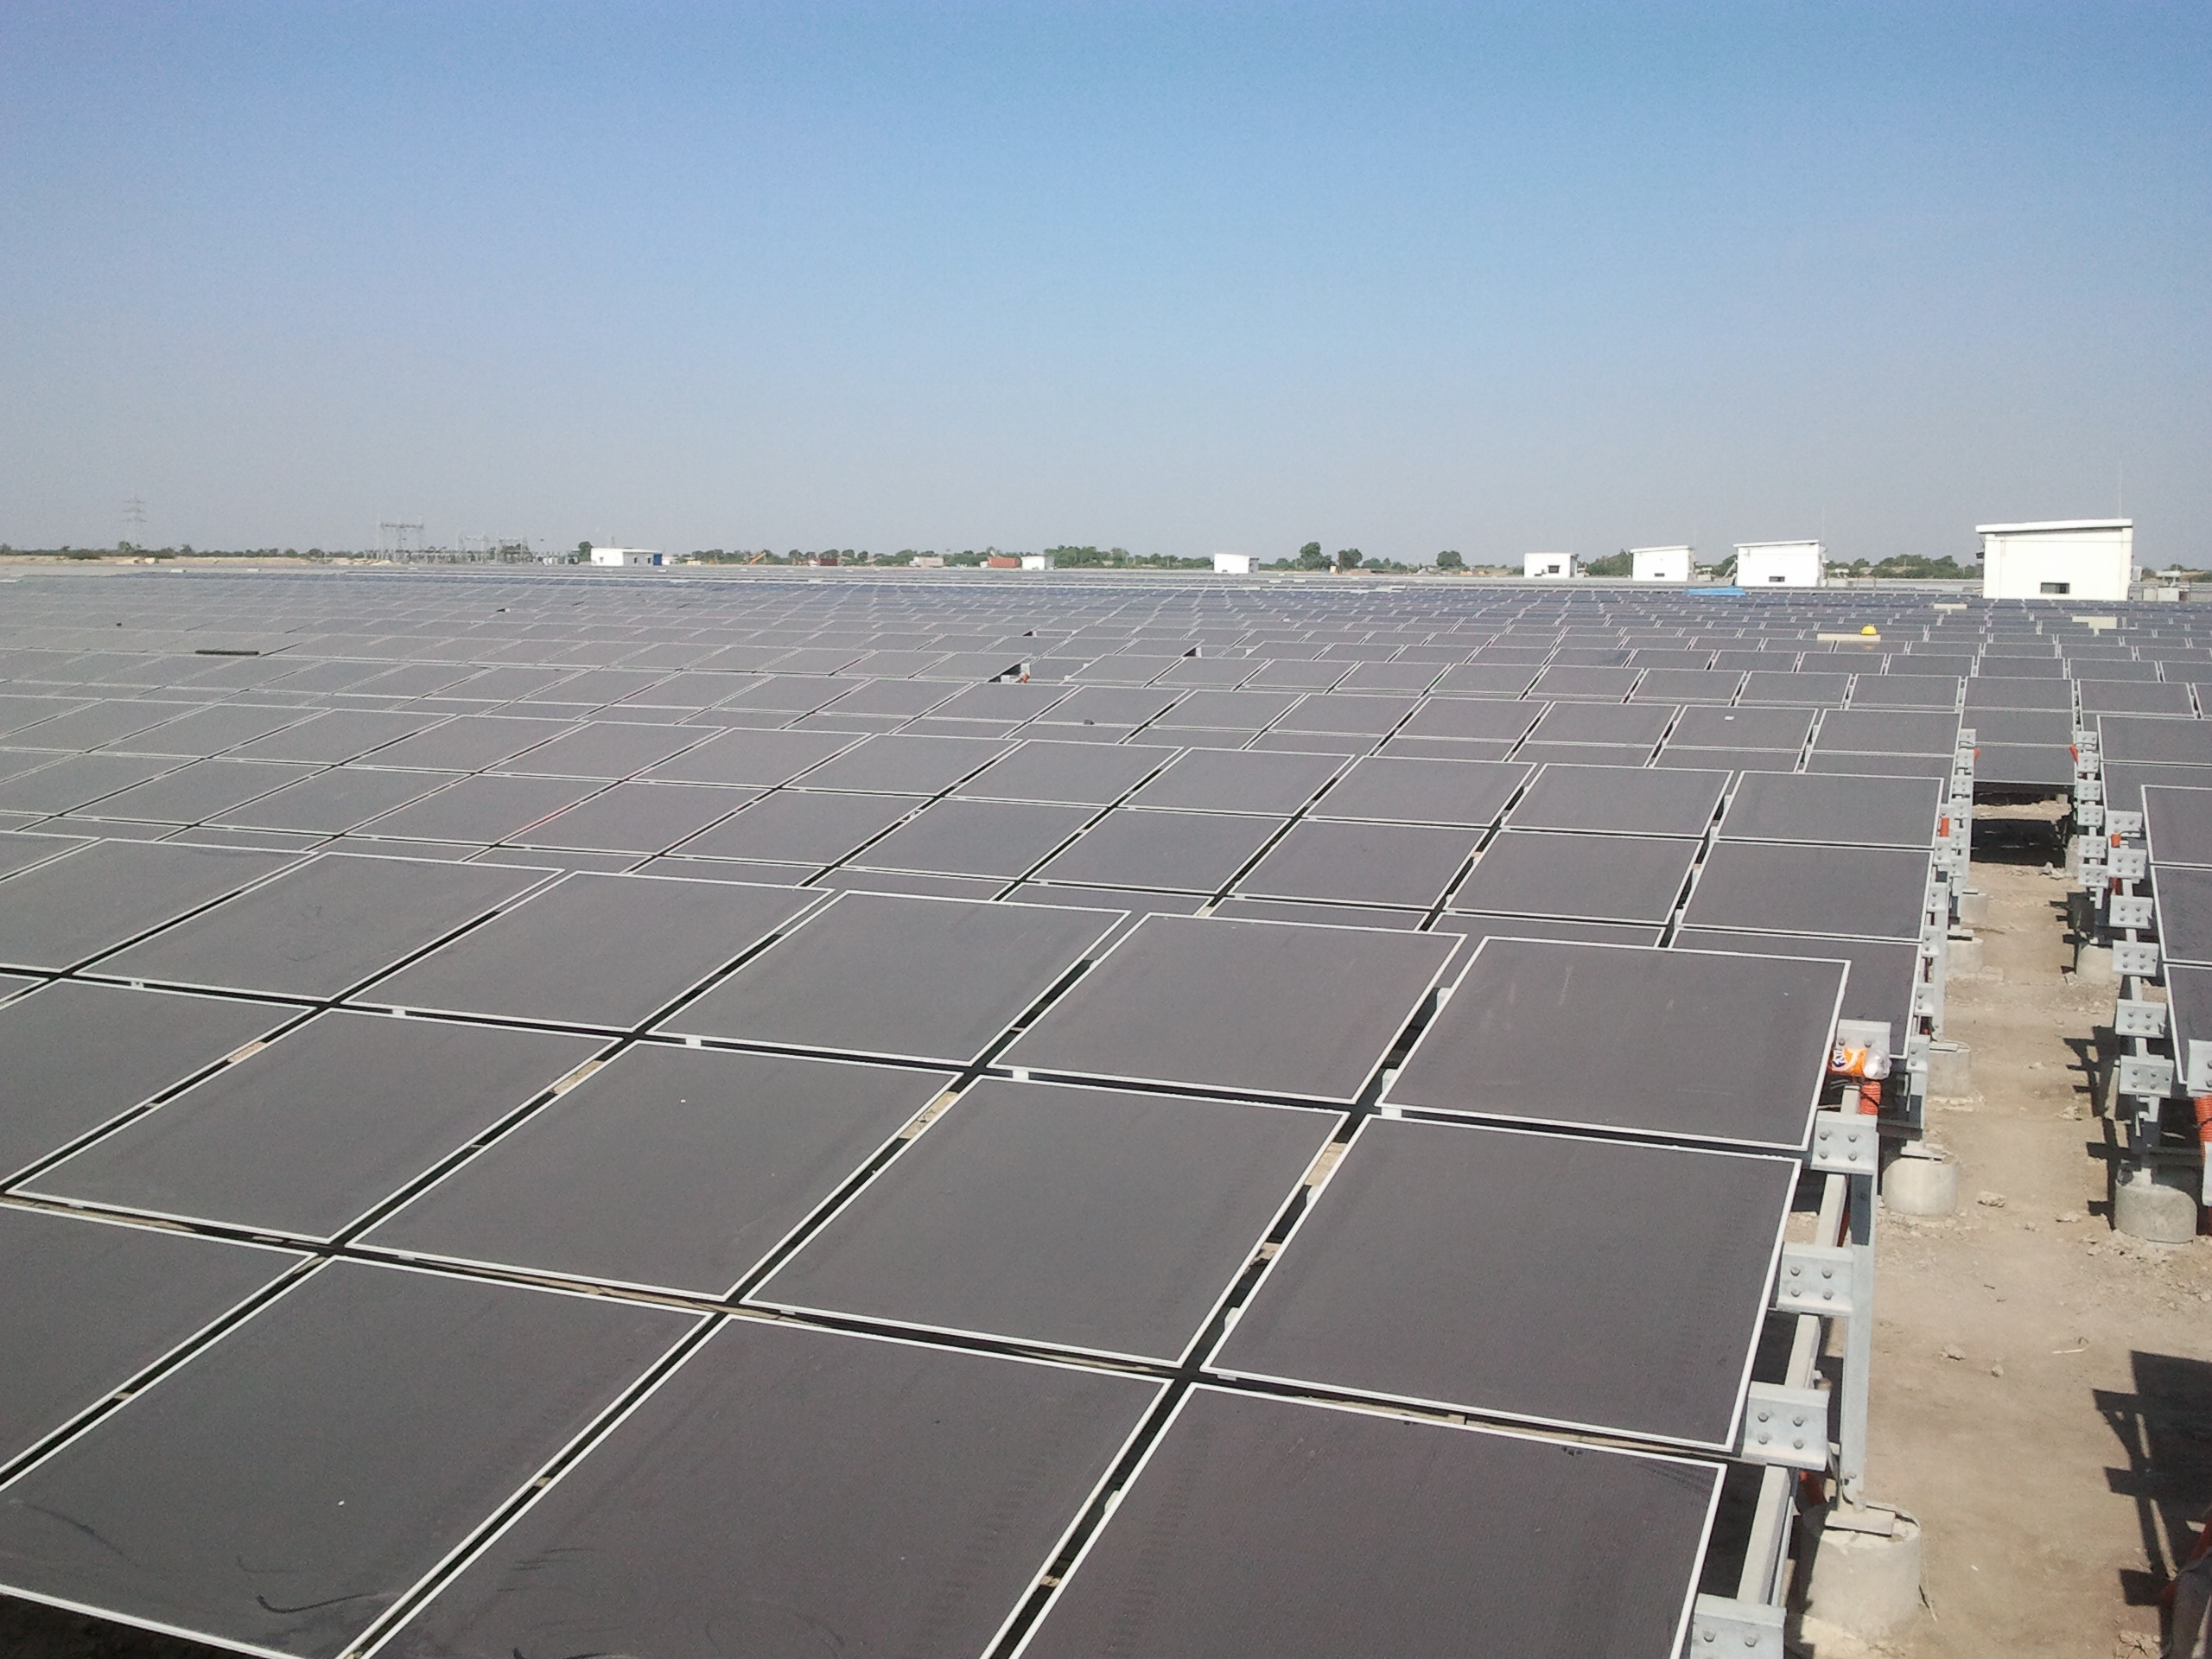 T-Solar 1 Gujarat India 12,3 MW